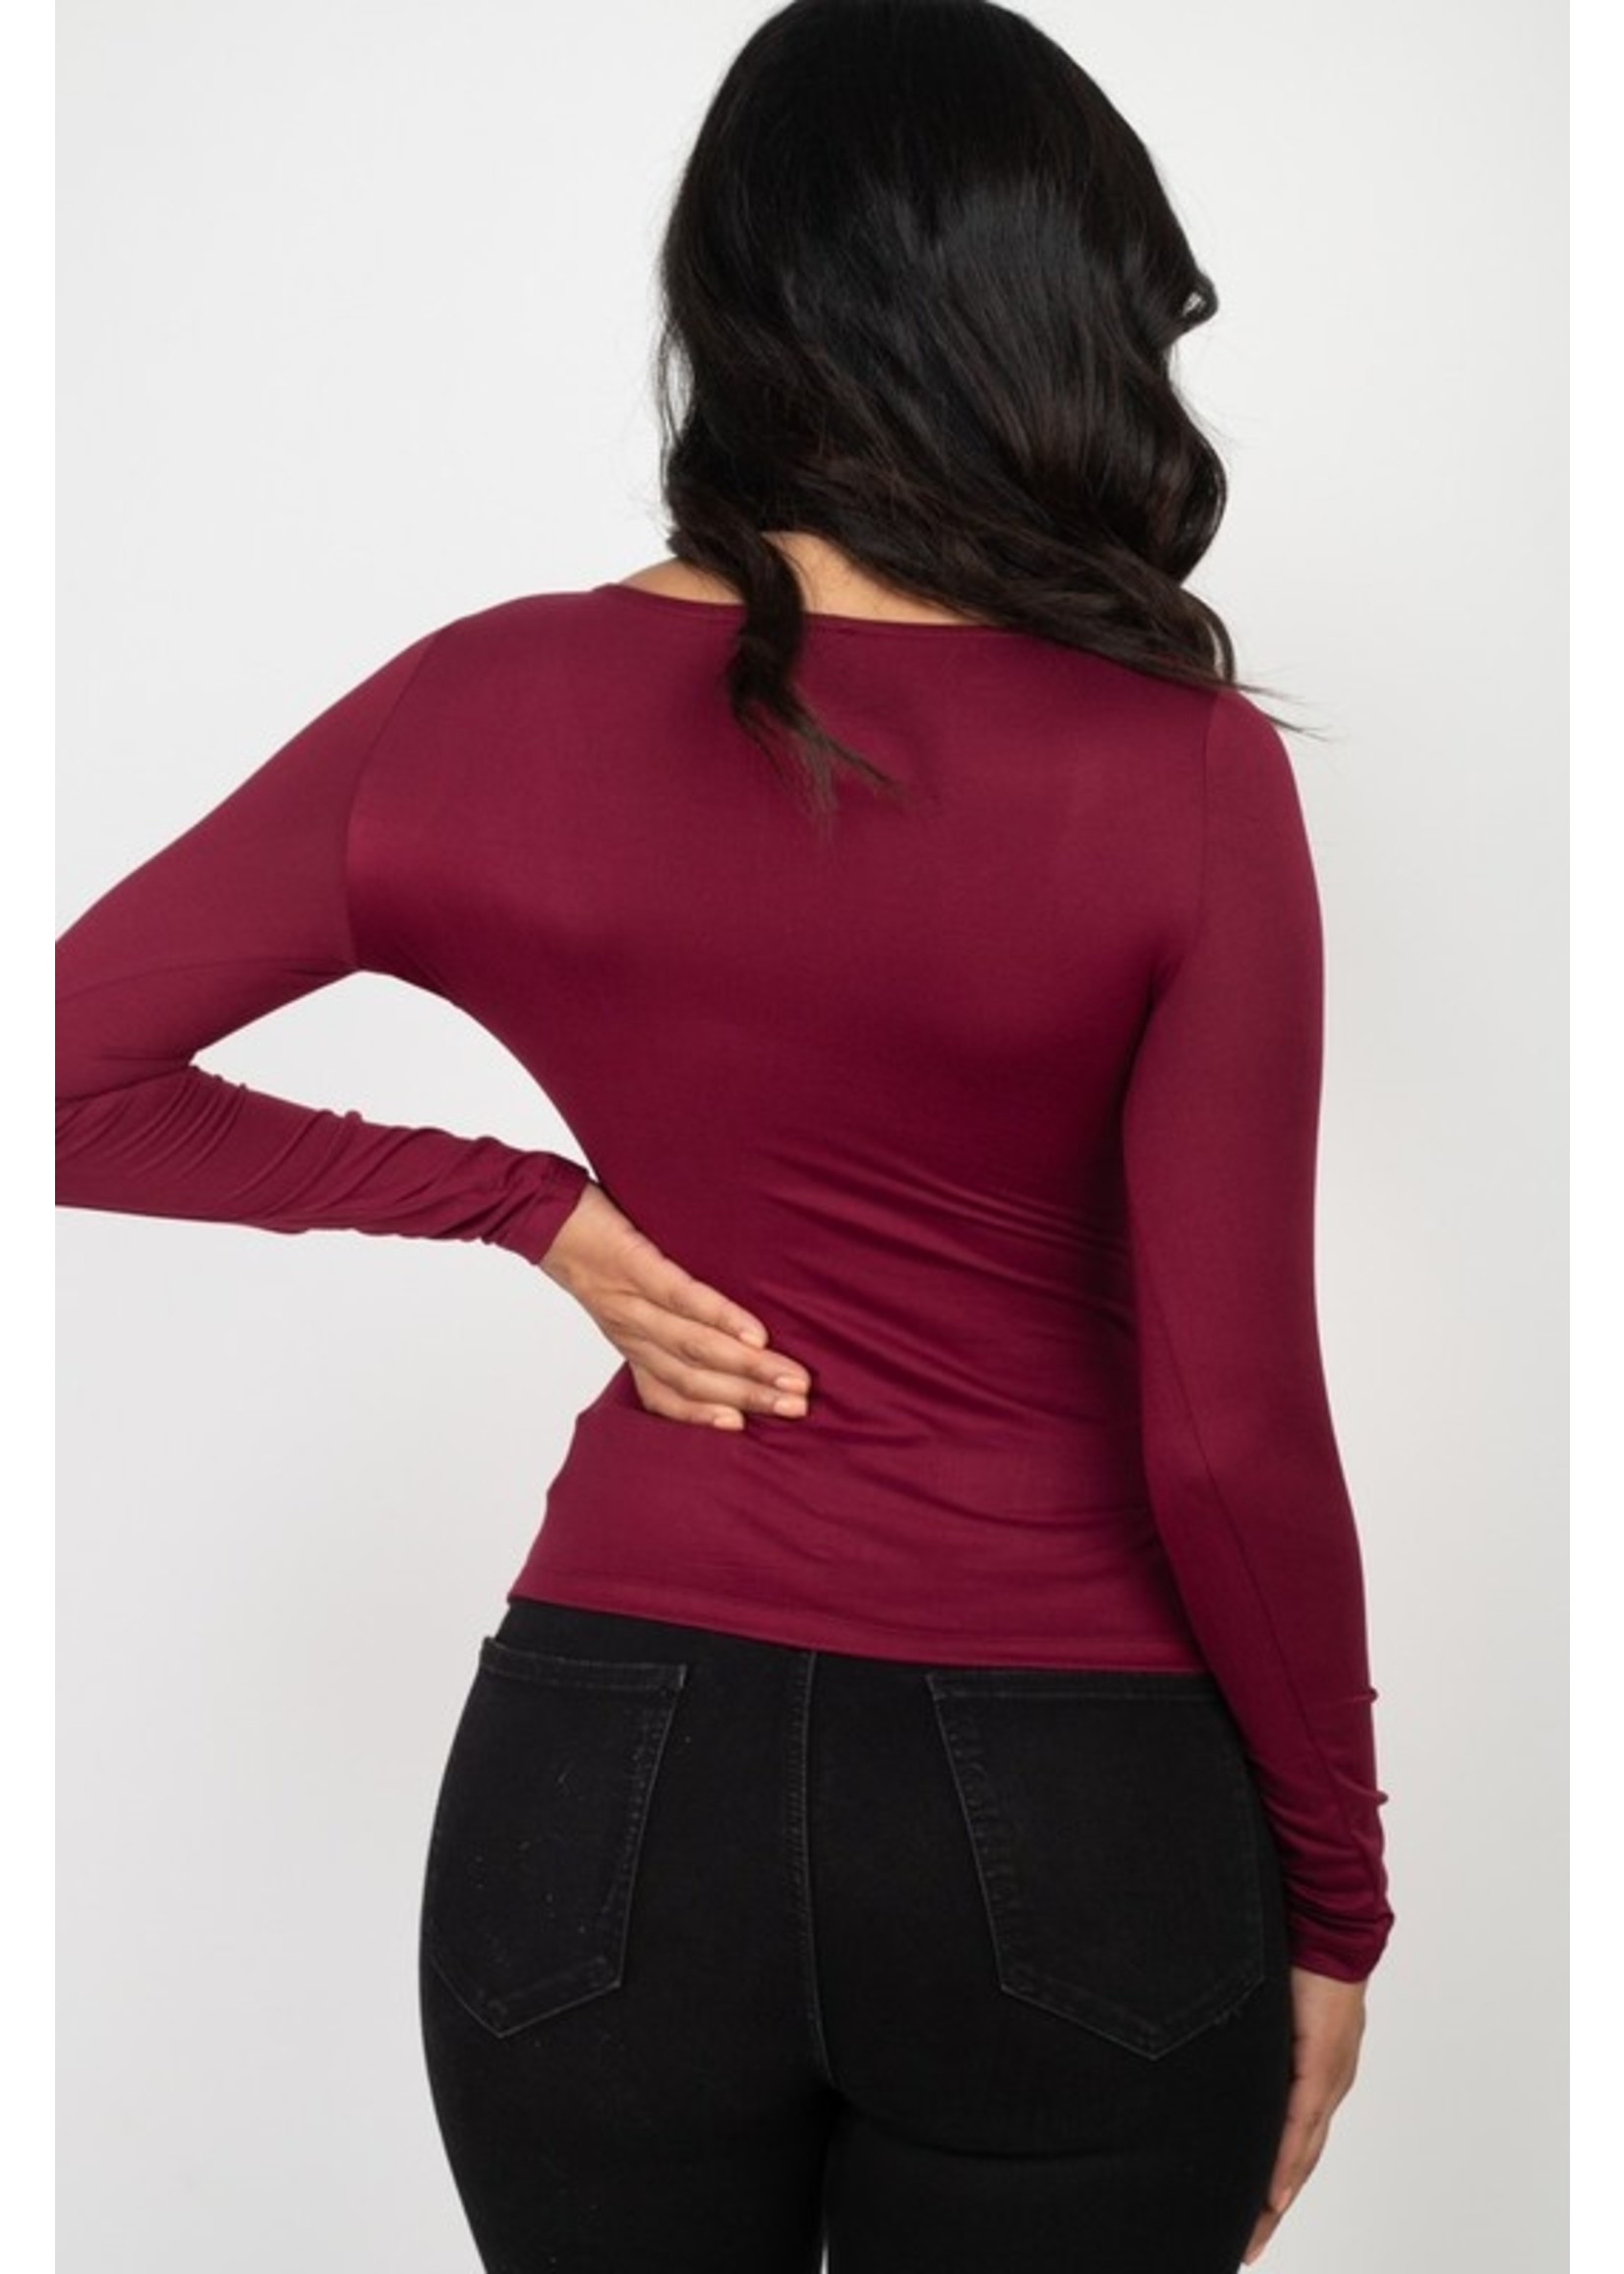 Capella Sincerely Yours Top Burgundy